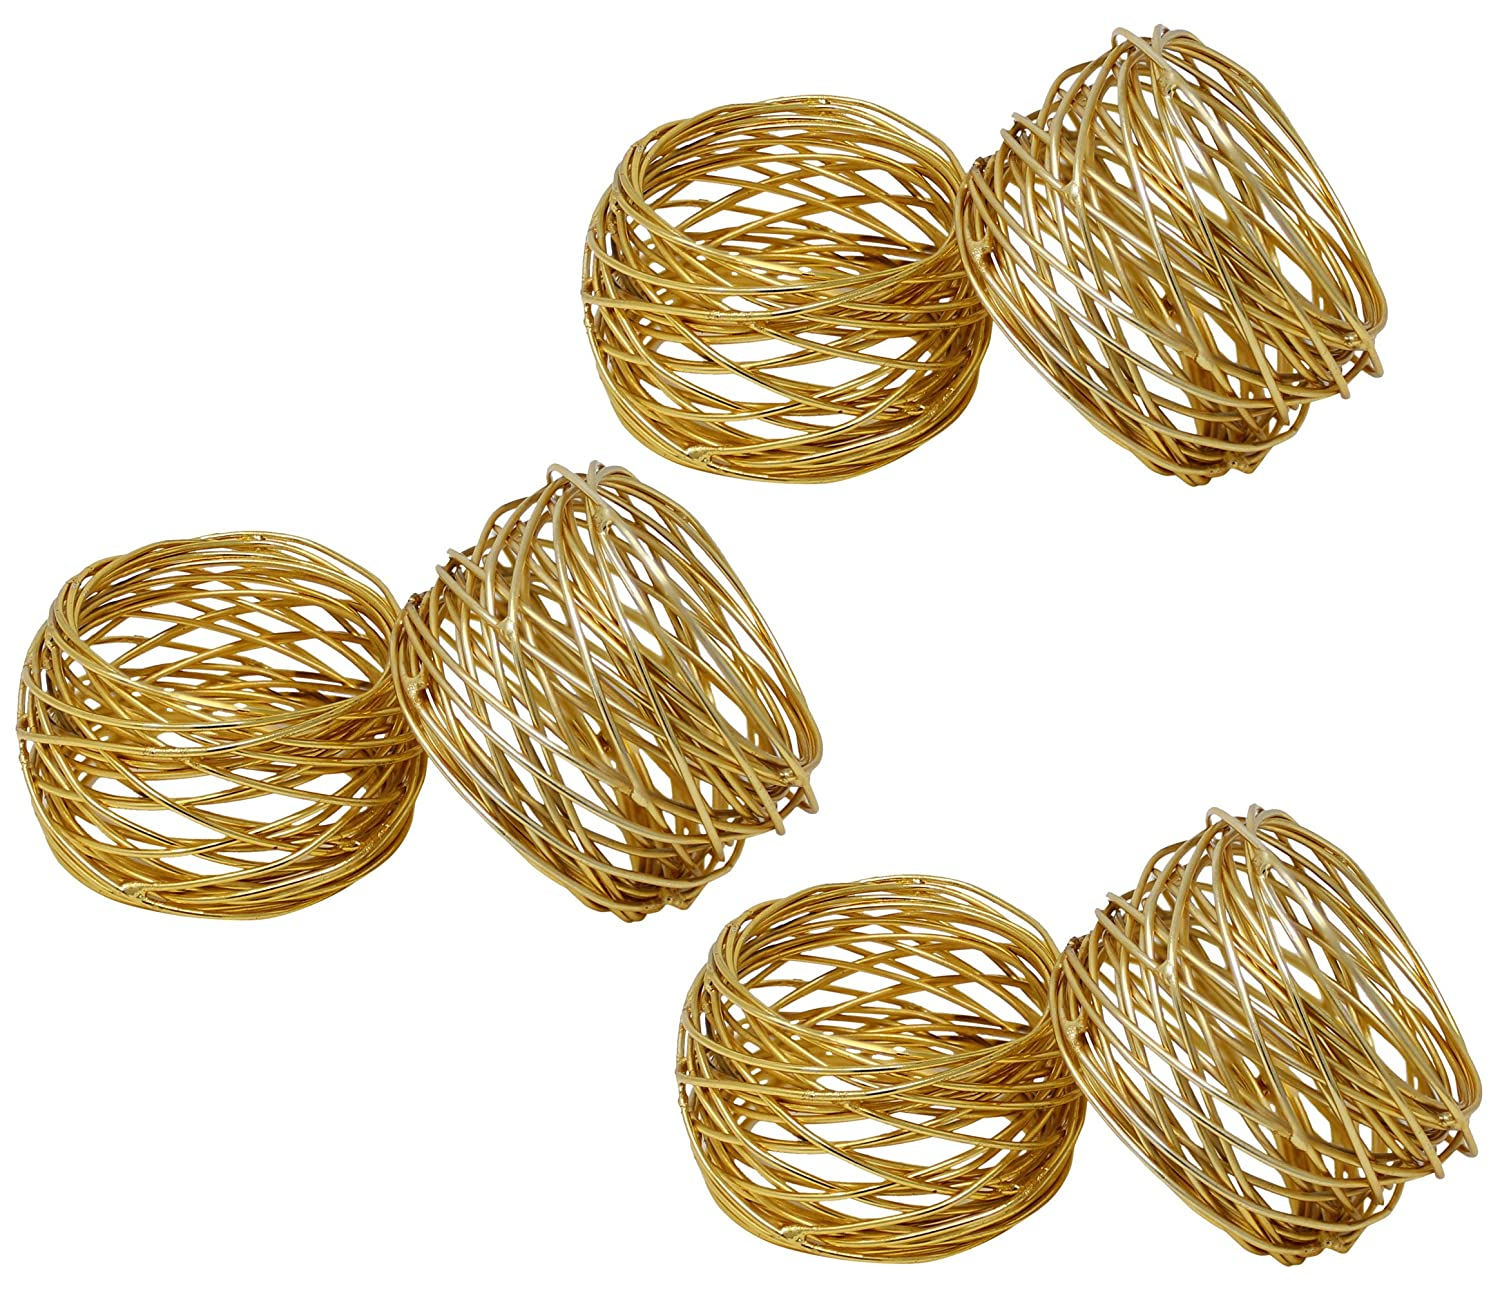 SKAVIJ Round Mesh Gold Napkin Rings Set of 12 Round for Weddings Dinner Parties or Every Day Use M_napkin_ring_001_gold_12_god